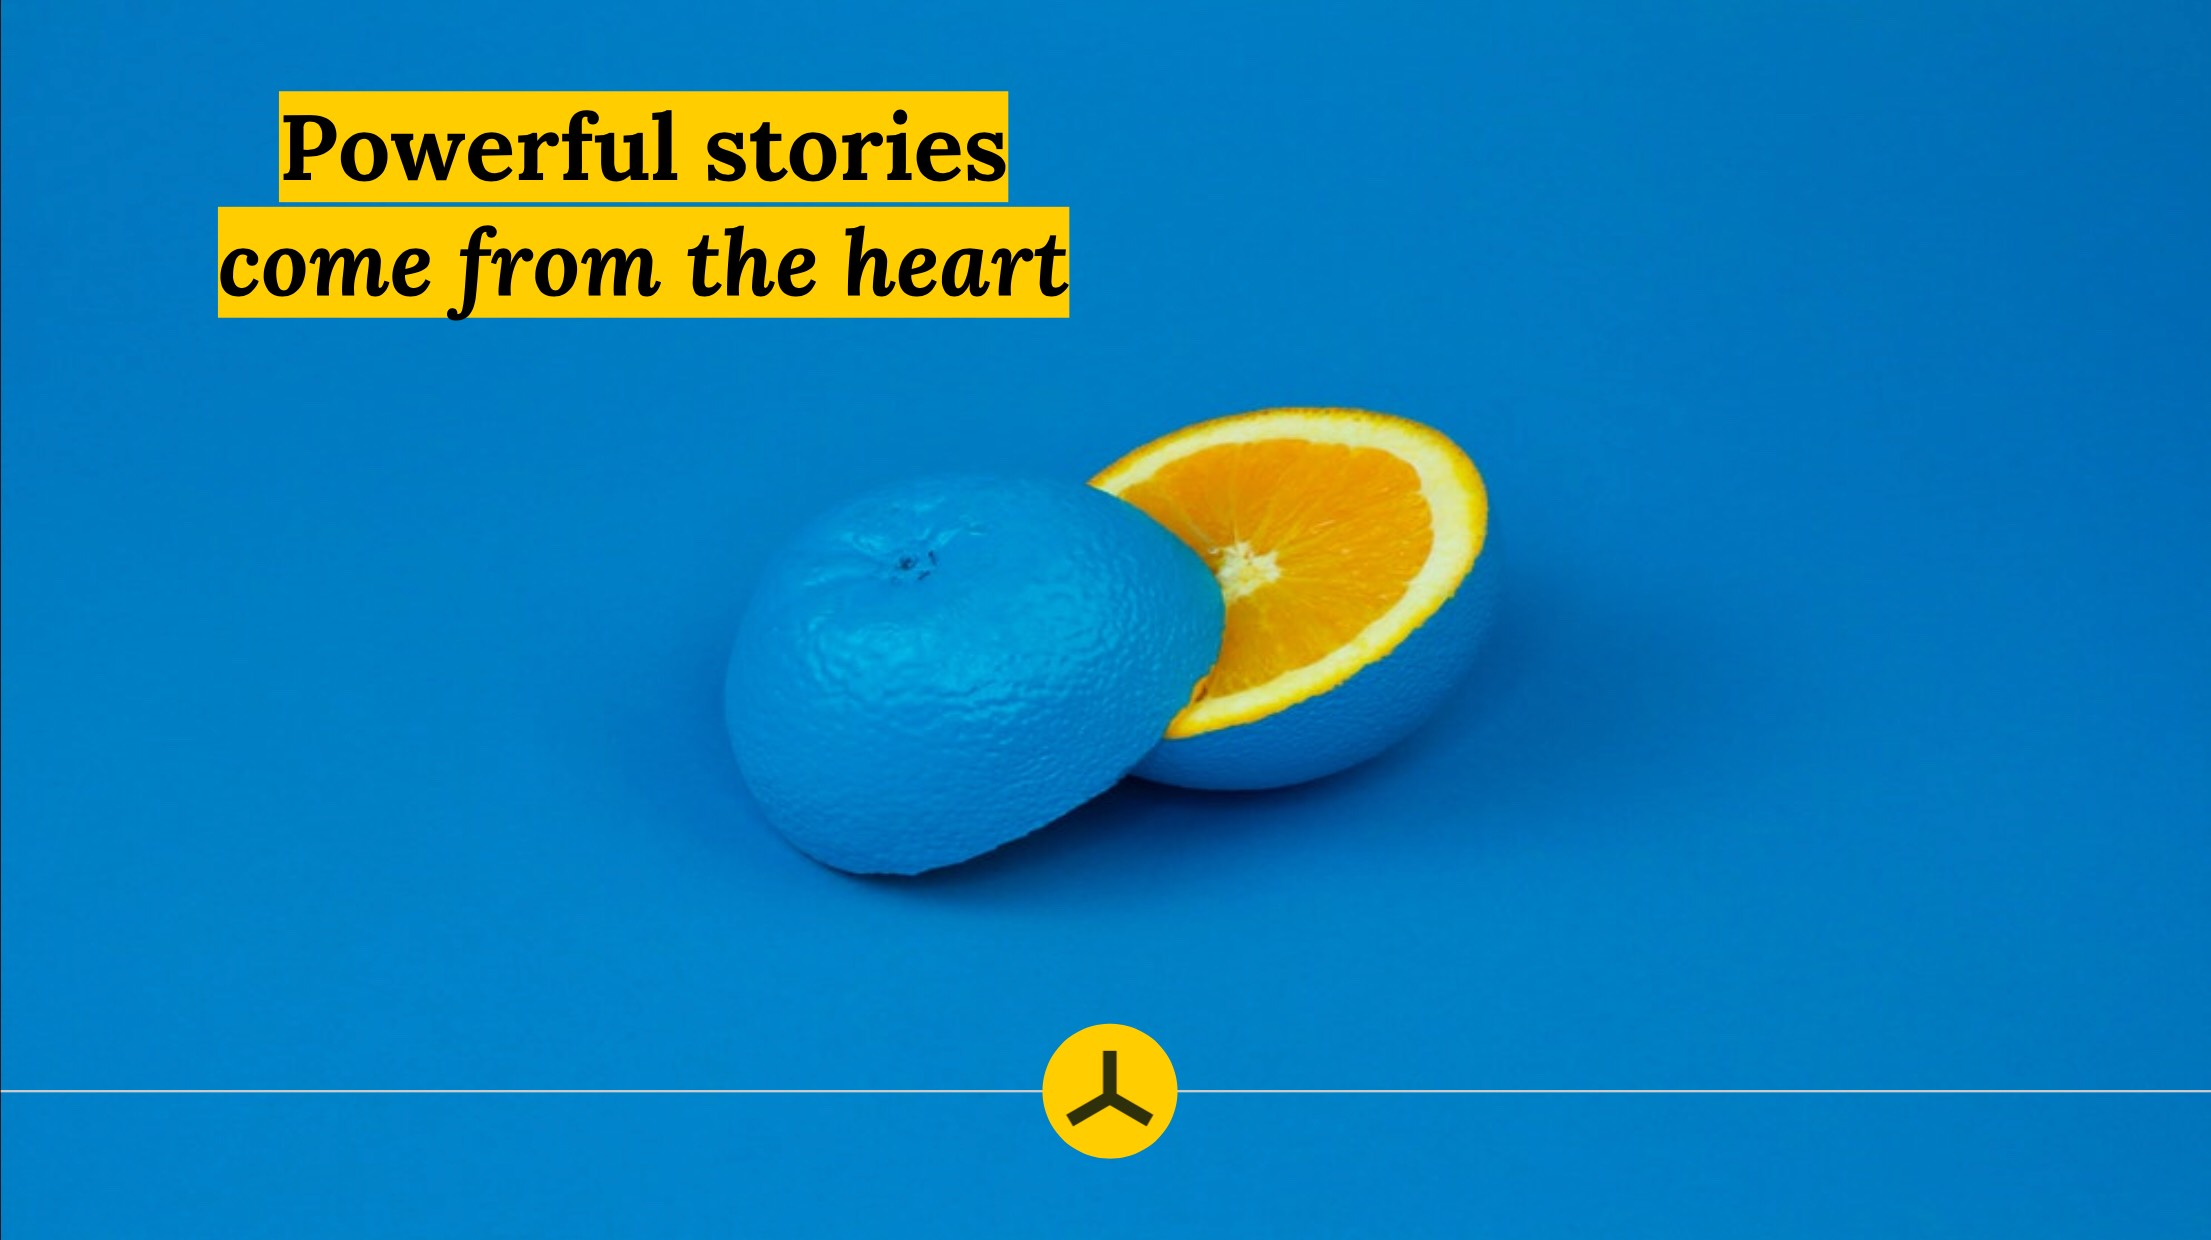 Powerful stories come from the hearth